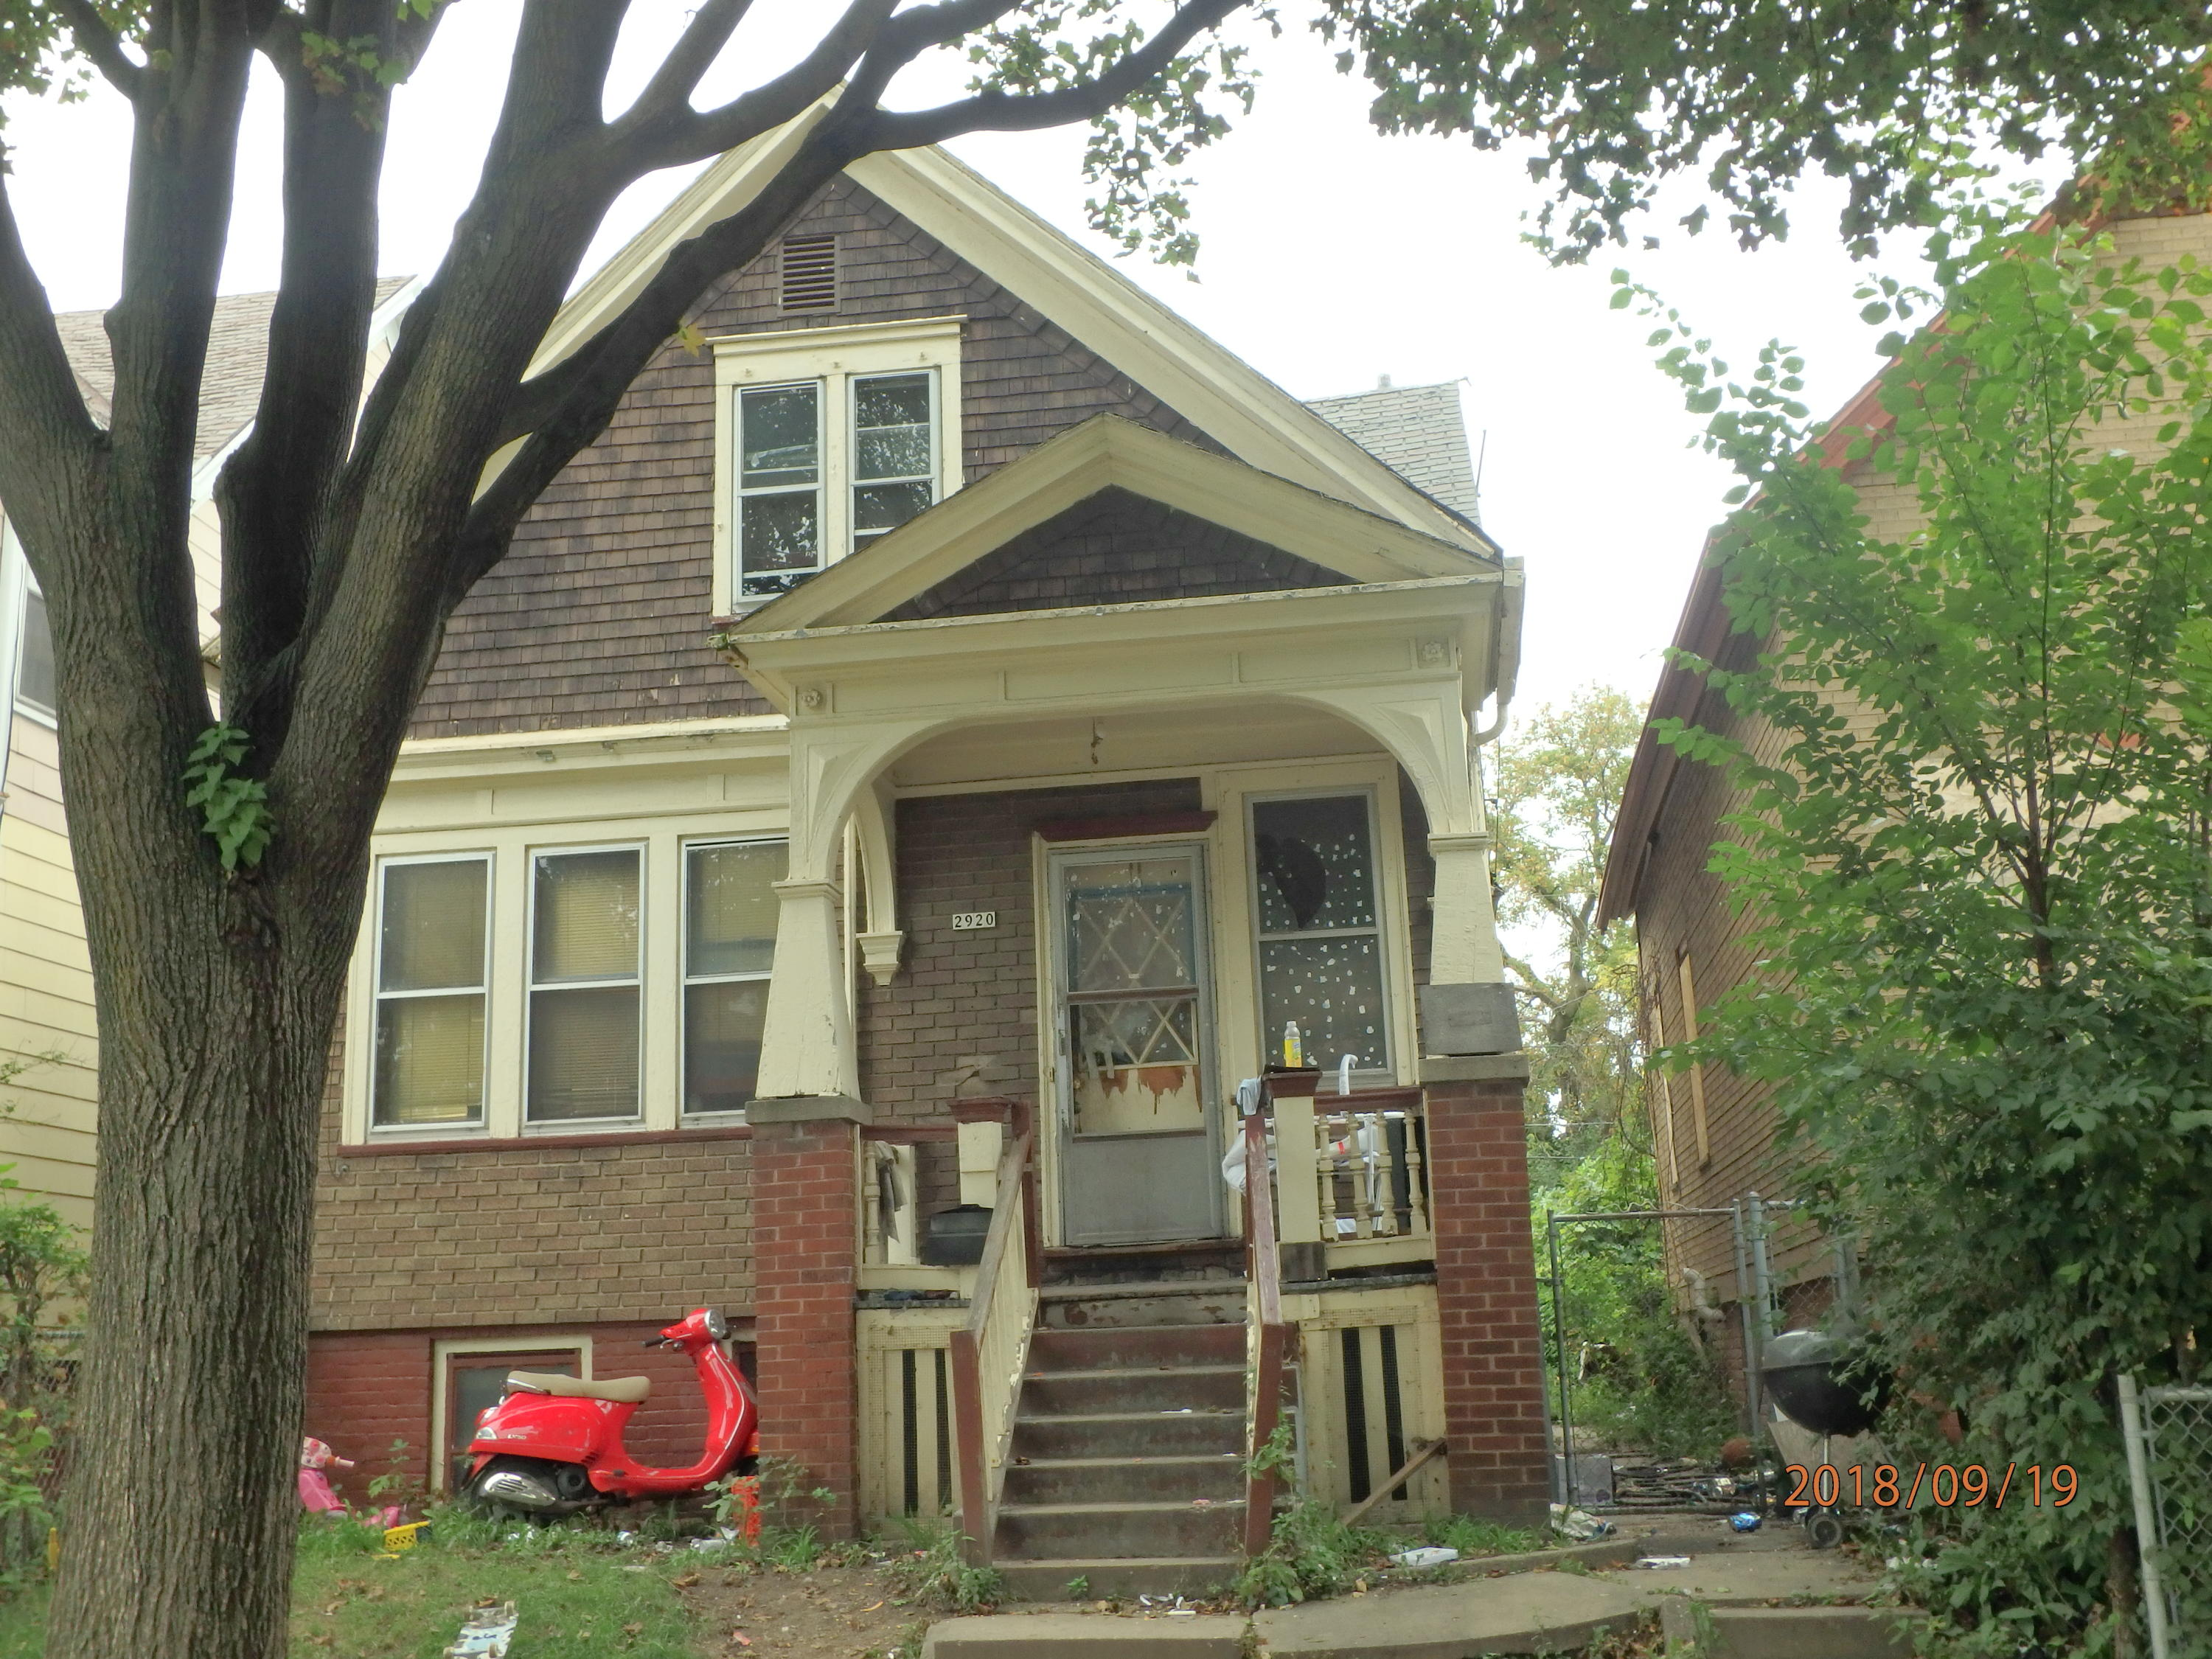 2920 23rd St, Milwaukee, Wisconsin 53206, 4 Bedrooms Bedrooms, 6 Rooms Rooms,1 BathroomBathrooms,Single-Family,For Sale,23rd St,1624658